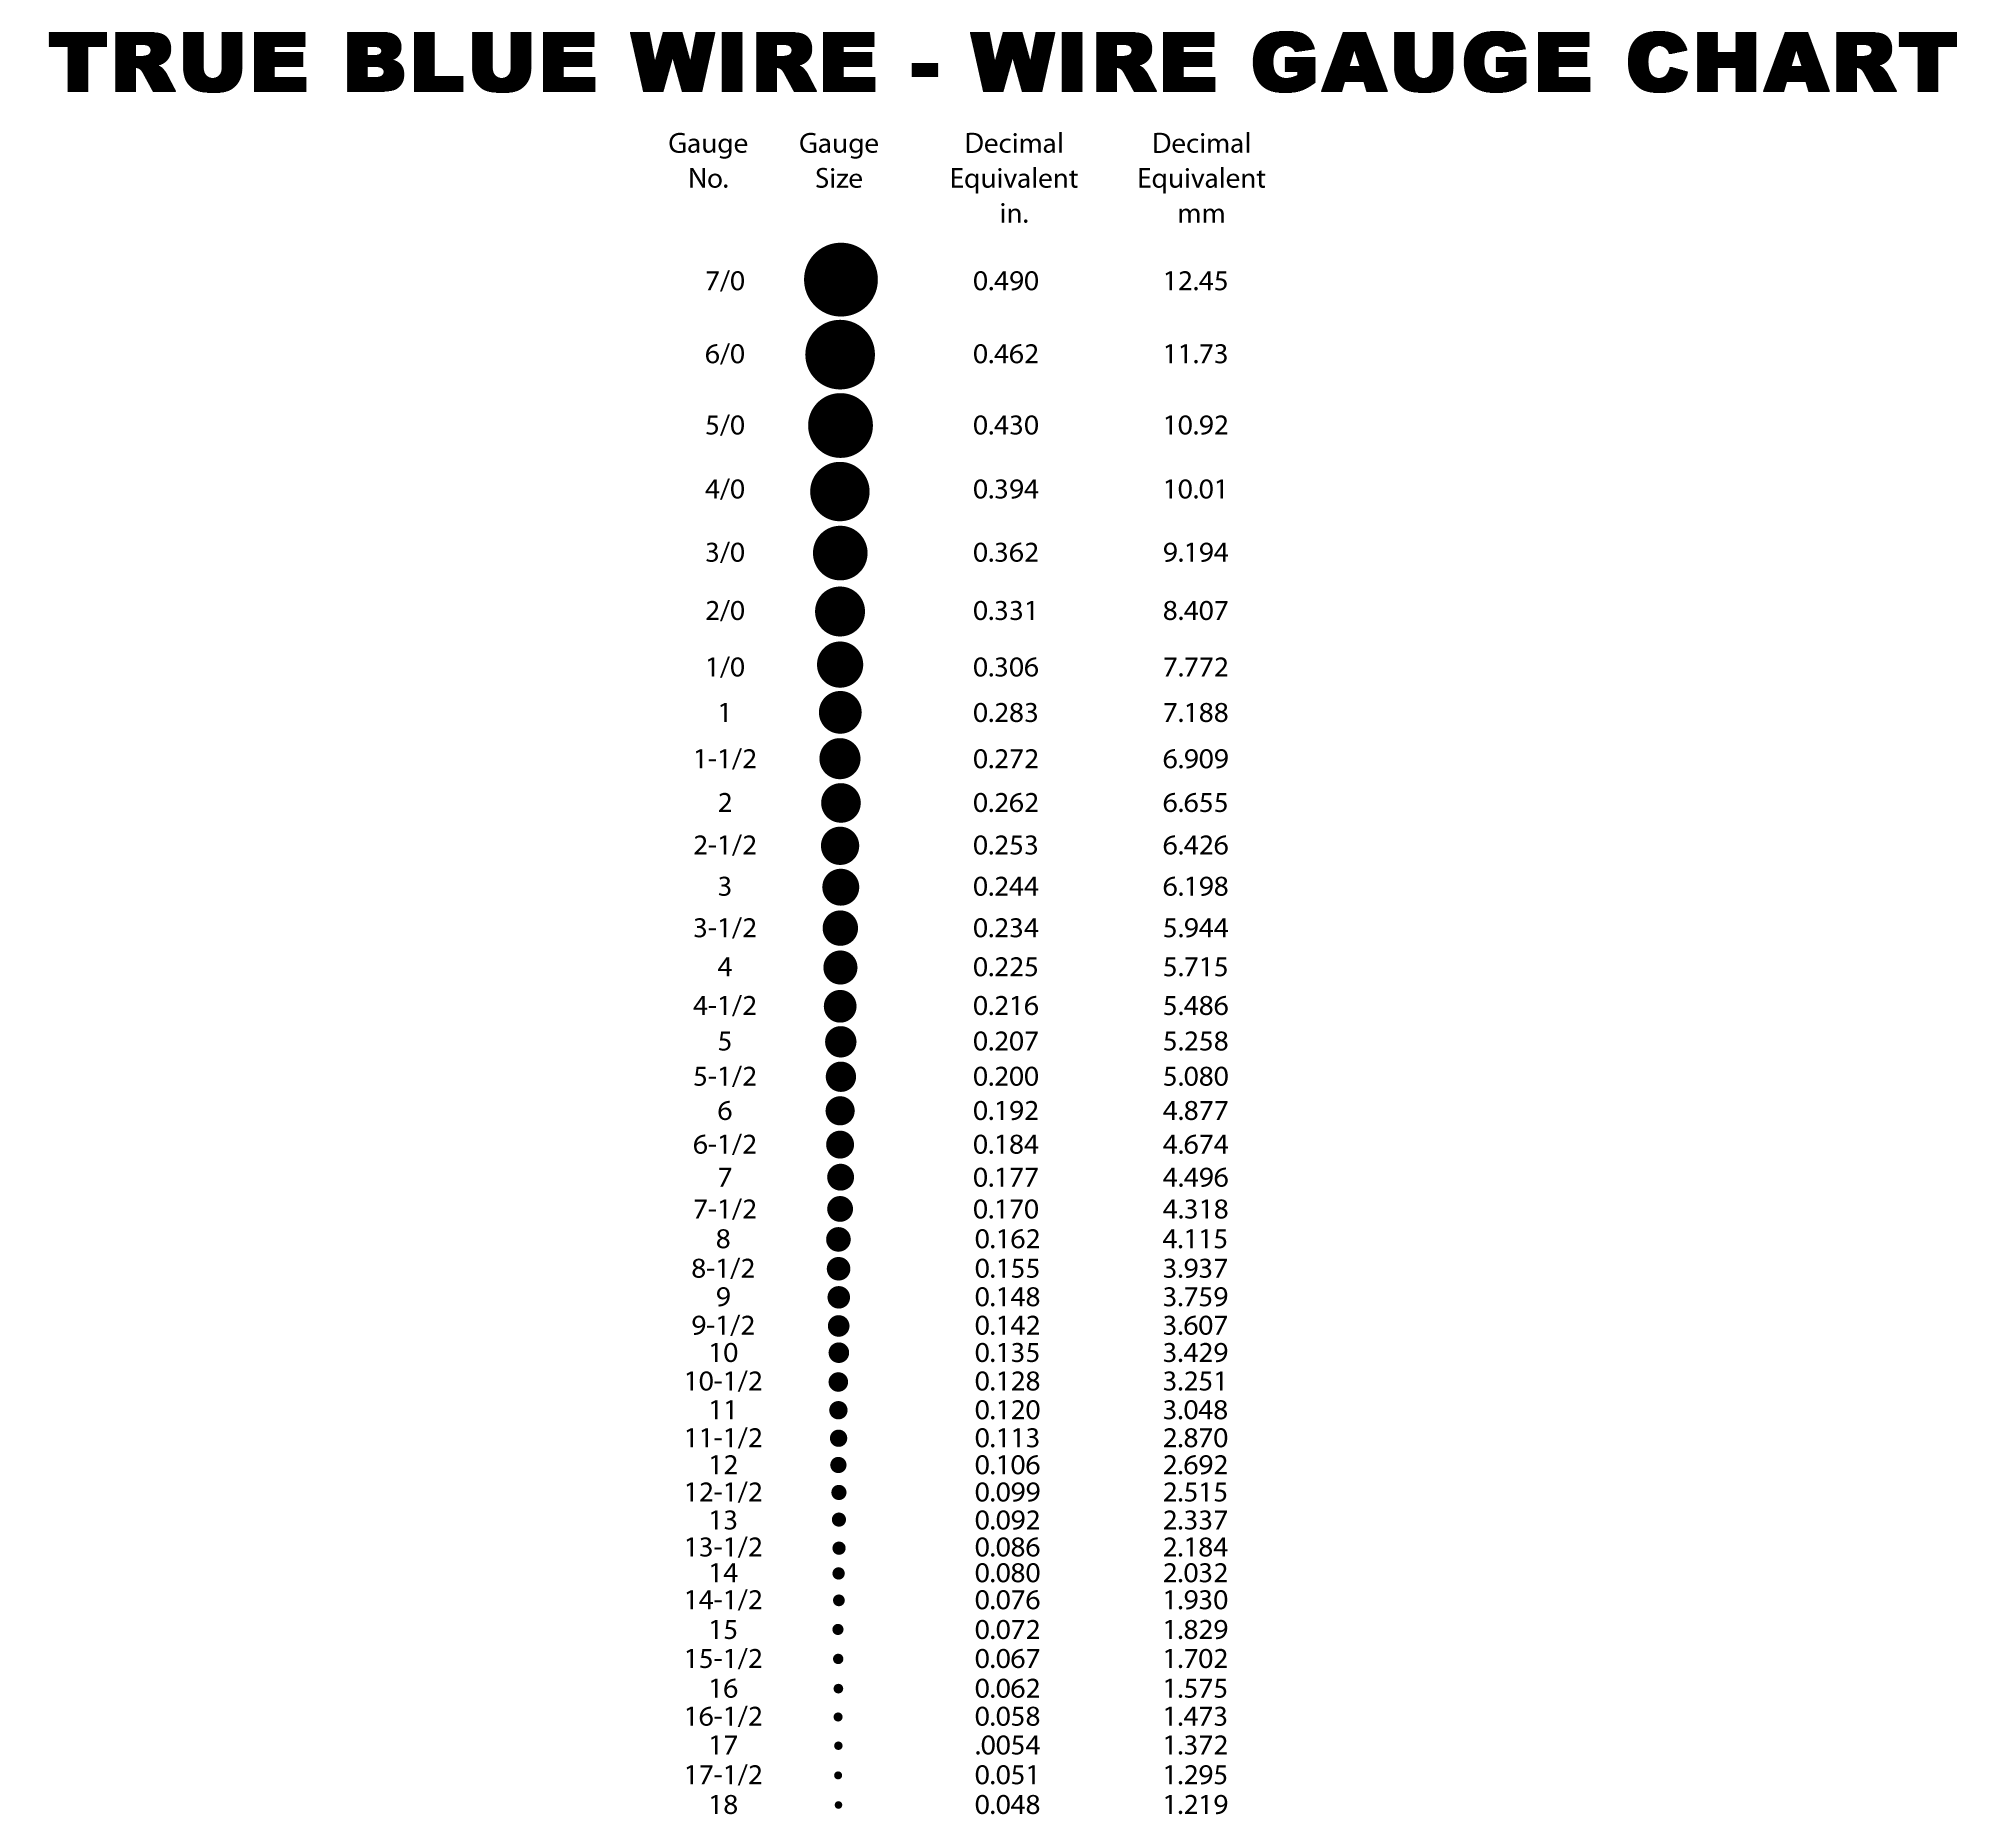 Wire Gauge Chart Wiring Diagram For Grow Room